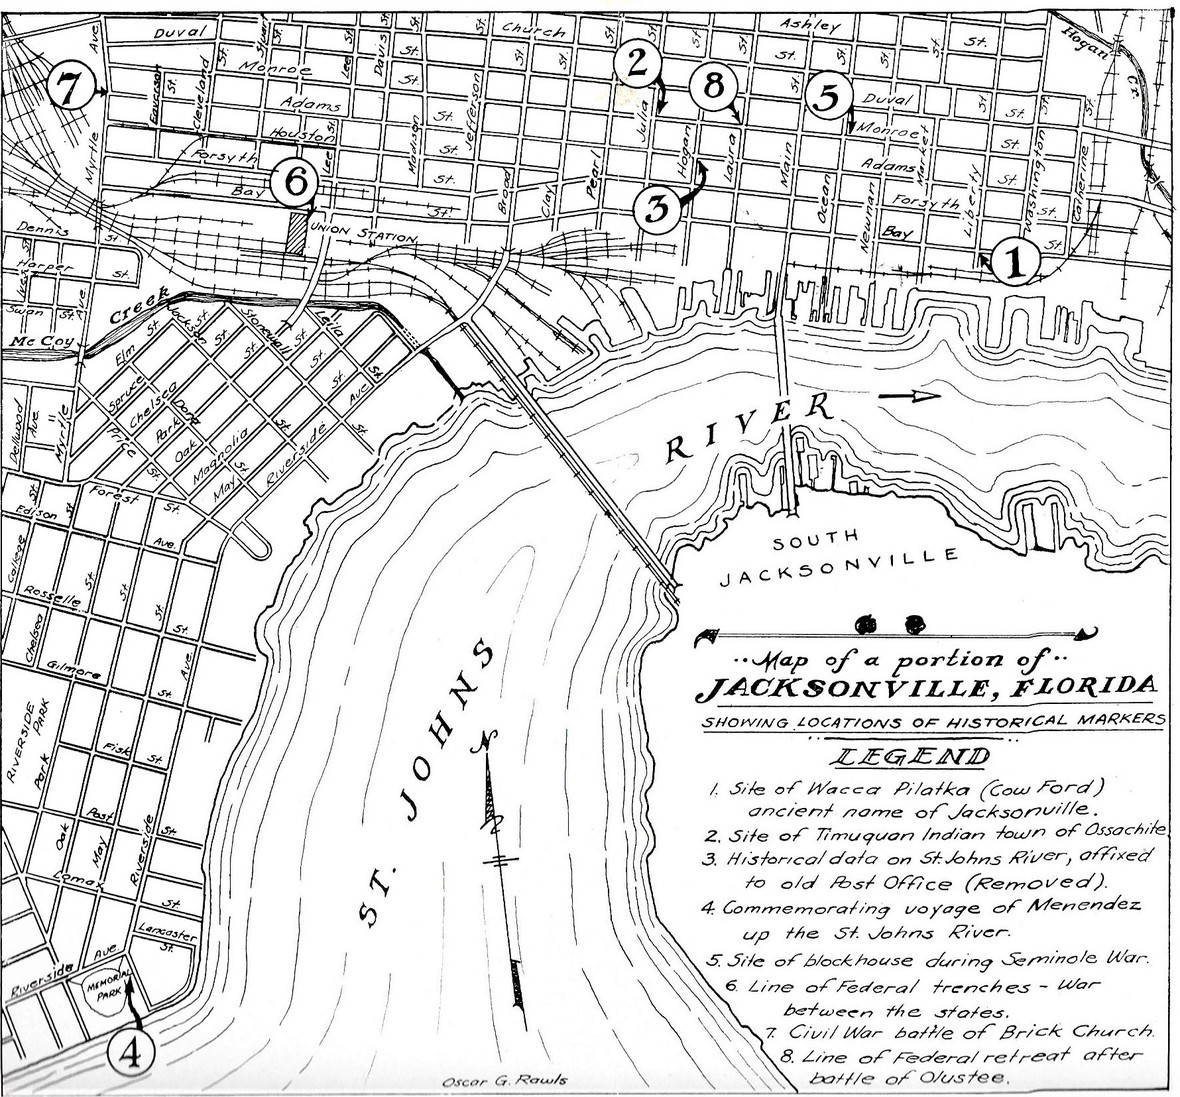 Historical markers map 1947 Papers